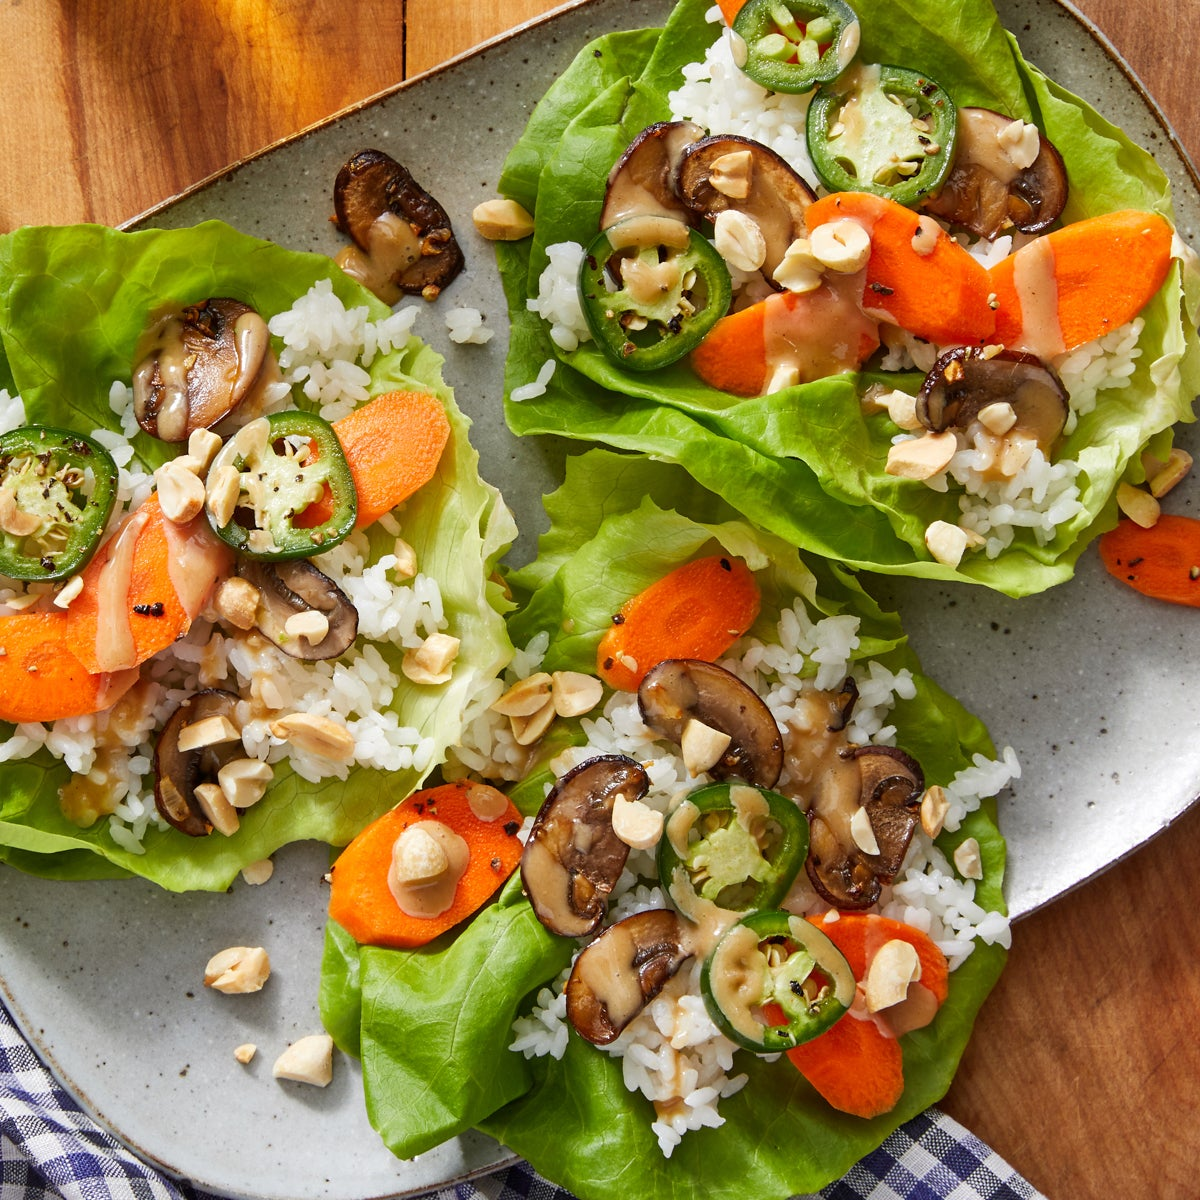 Spicy Carrot & Mushroom Lettuce Cups with Tahini Sauce